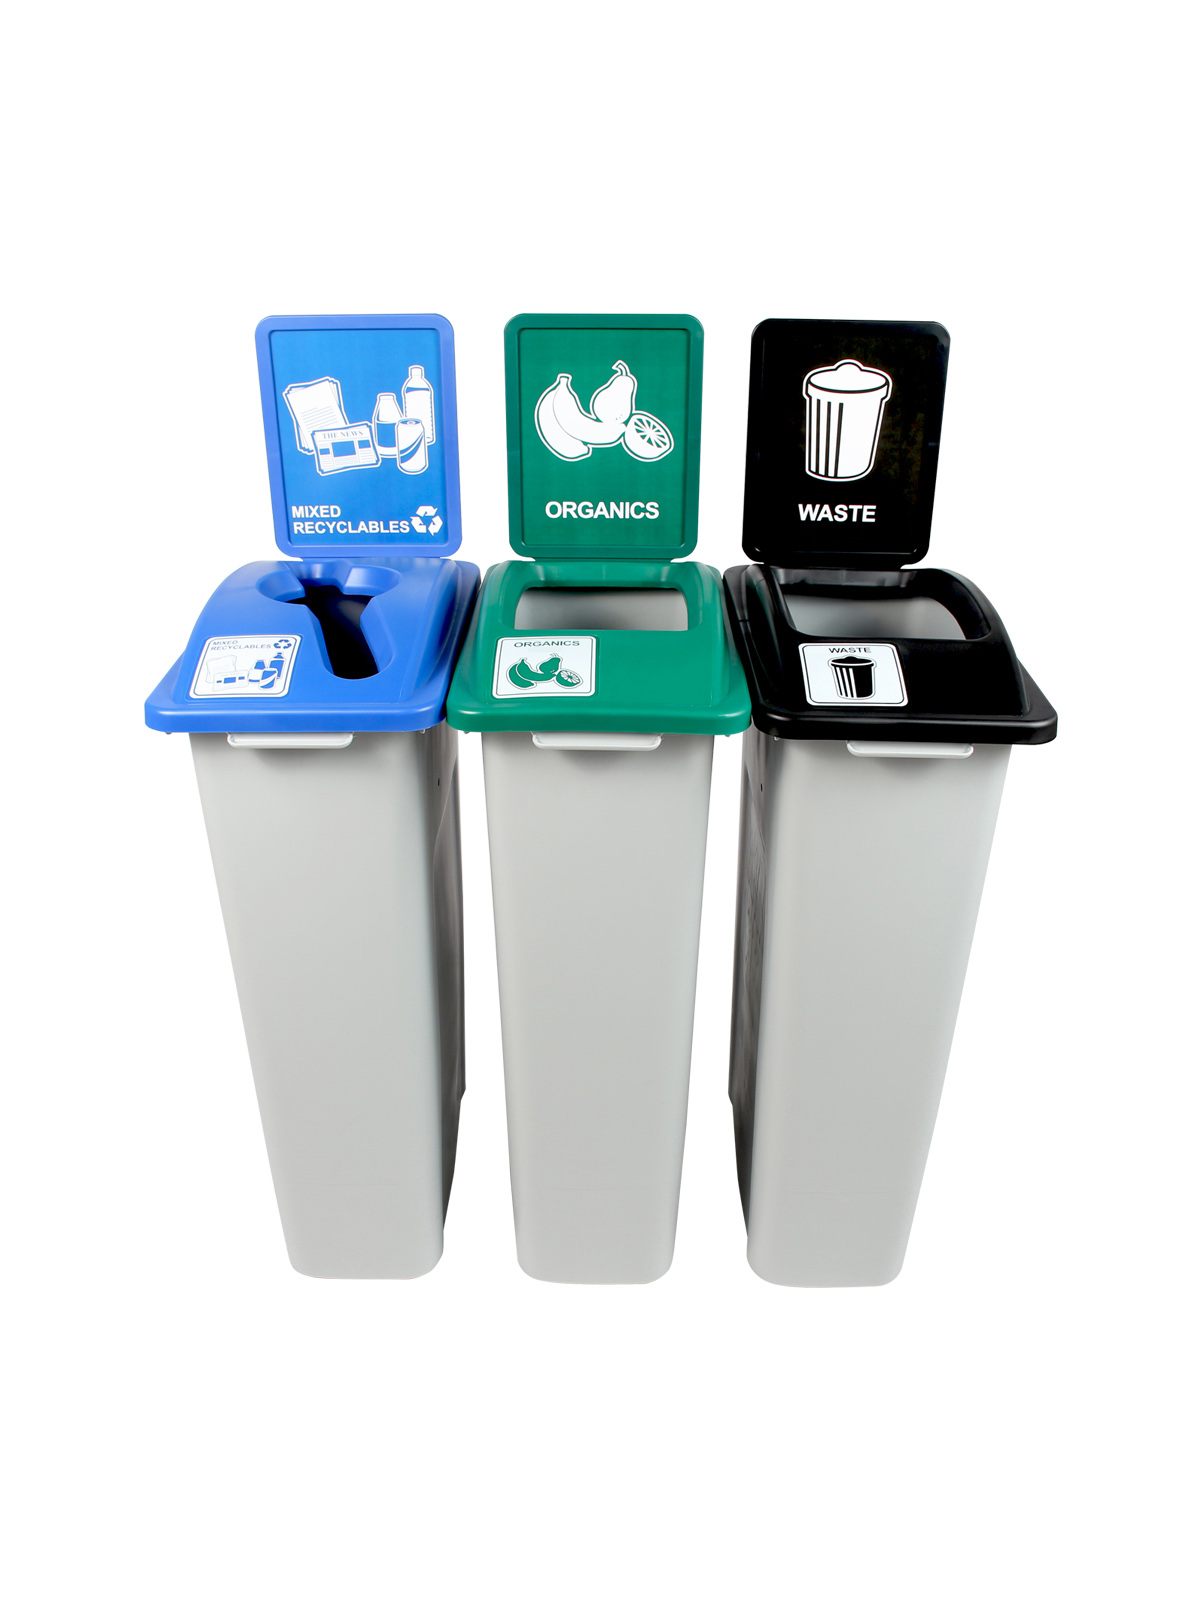 WASTE WATCHER - Triple - Ontario Compliant - Mixed Recyclables-Organics-Waste - Mixed-Full - Grey-Blue-Green-Black title=